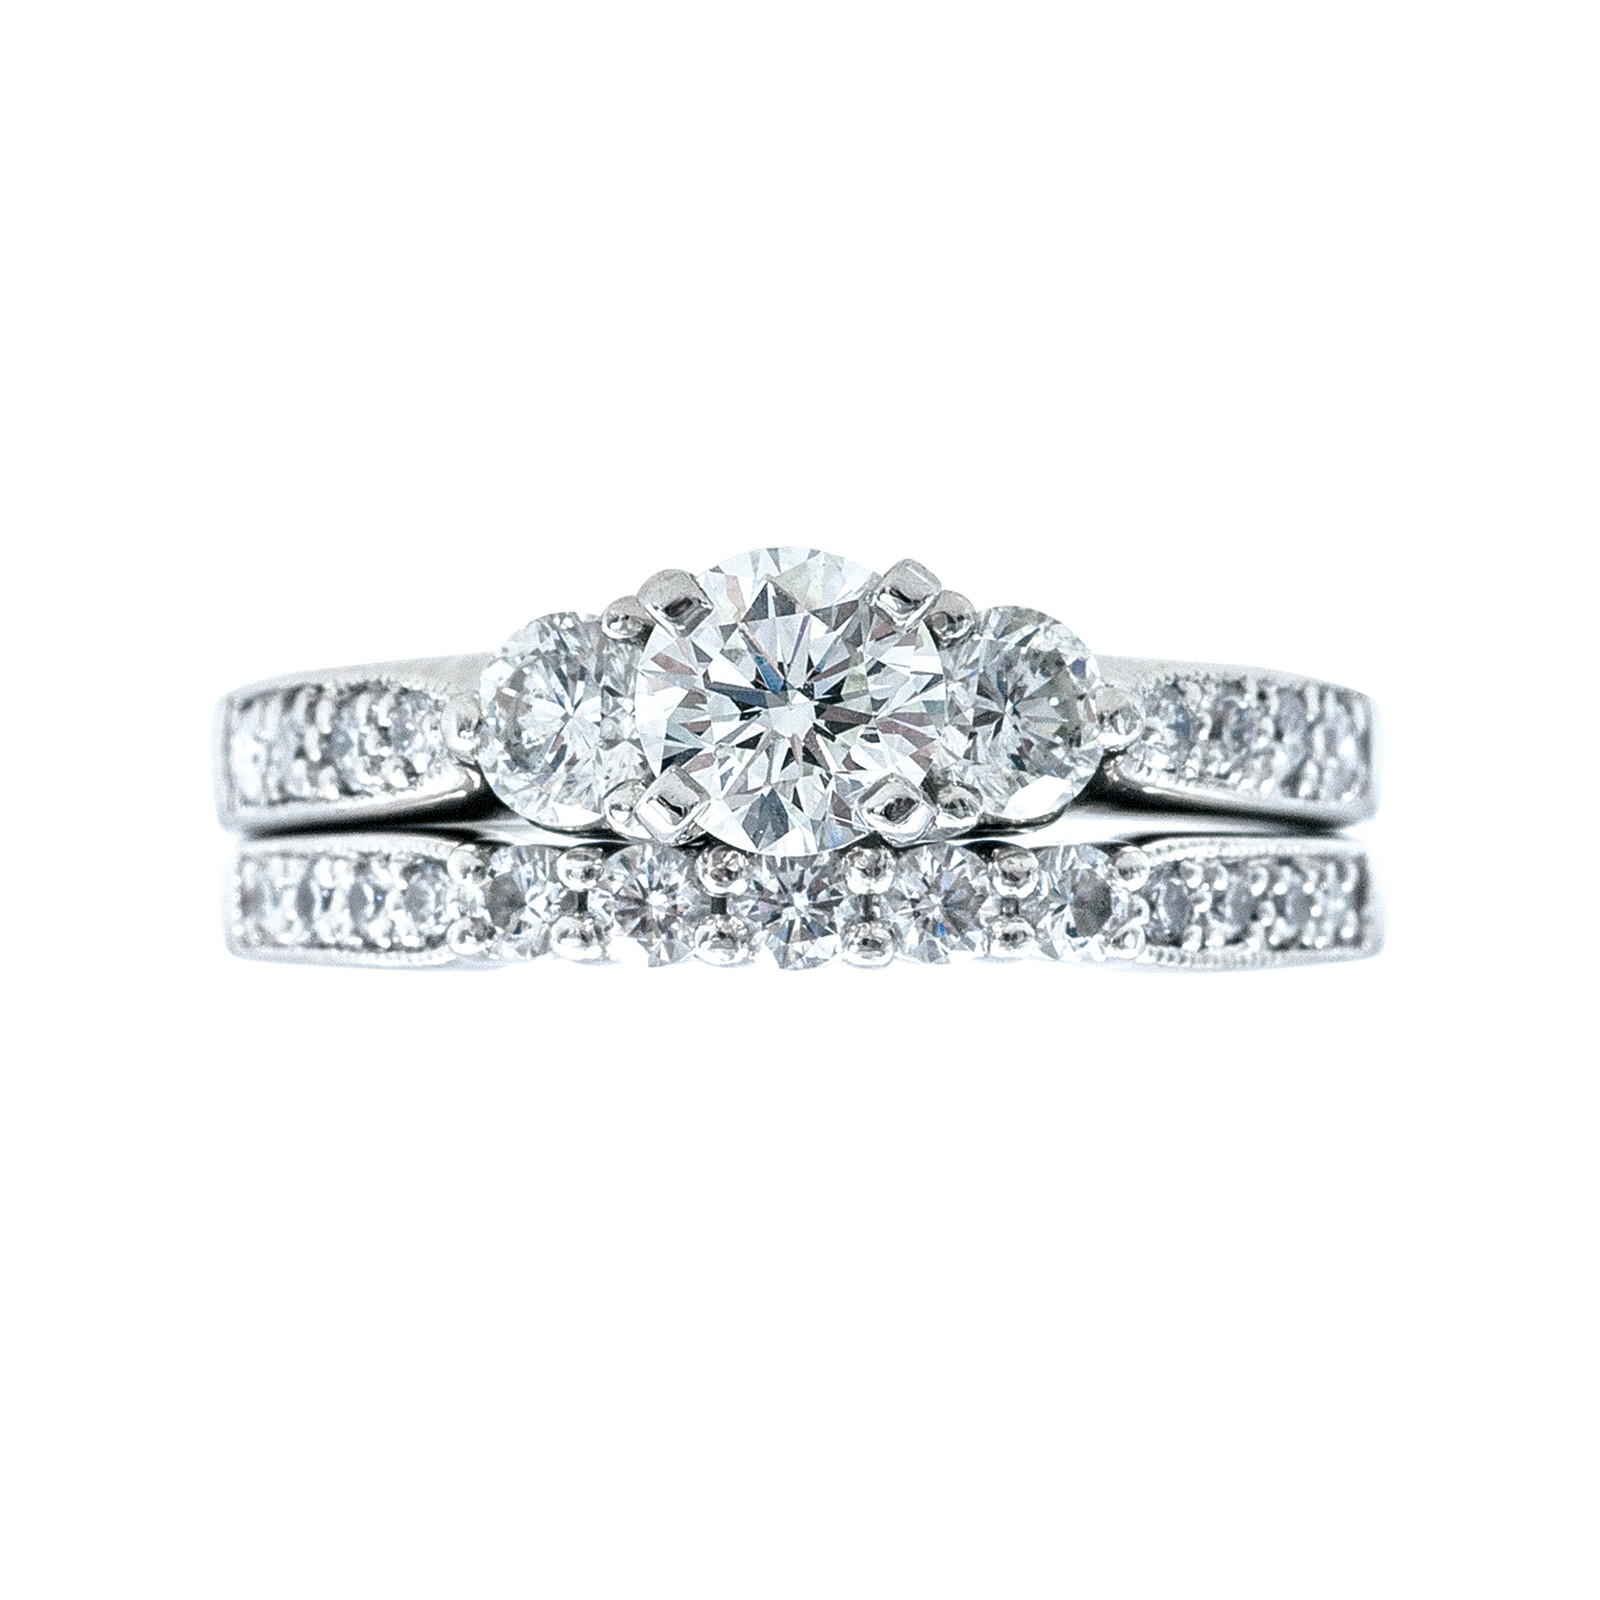 Vintage 1.18 CTW Diamond Engagement Ring & Wedding Band Set